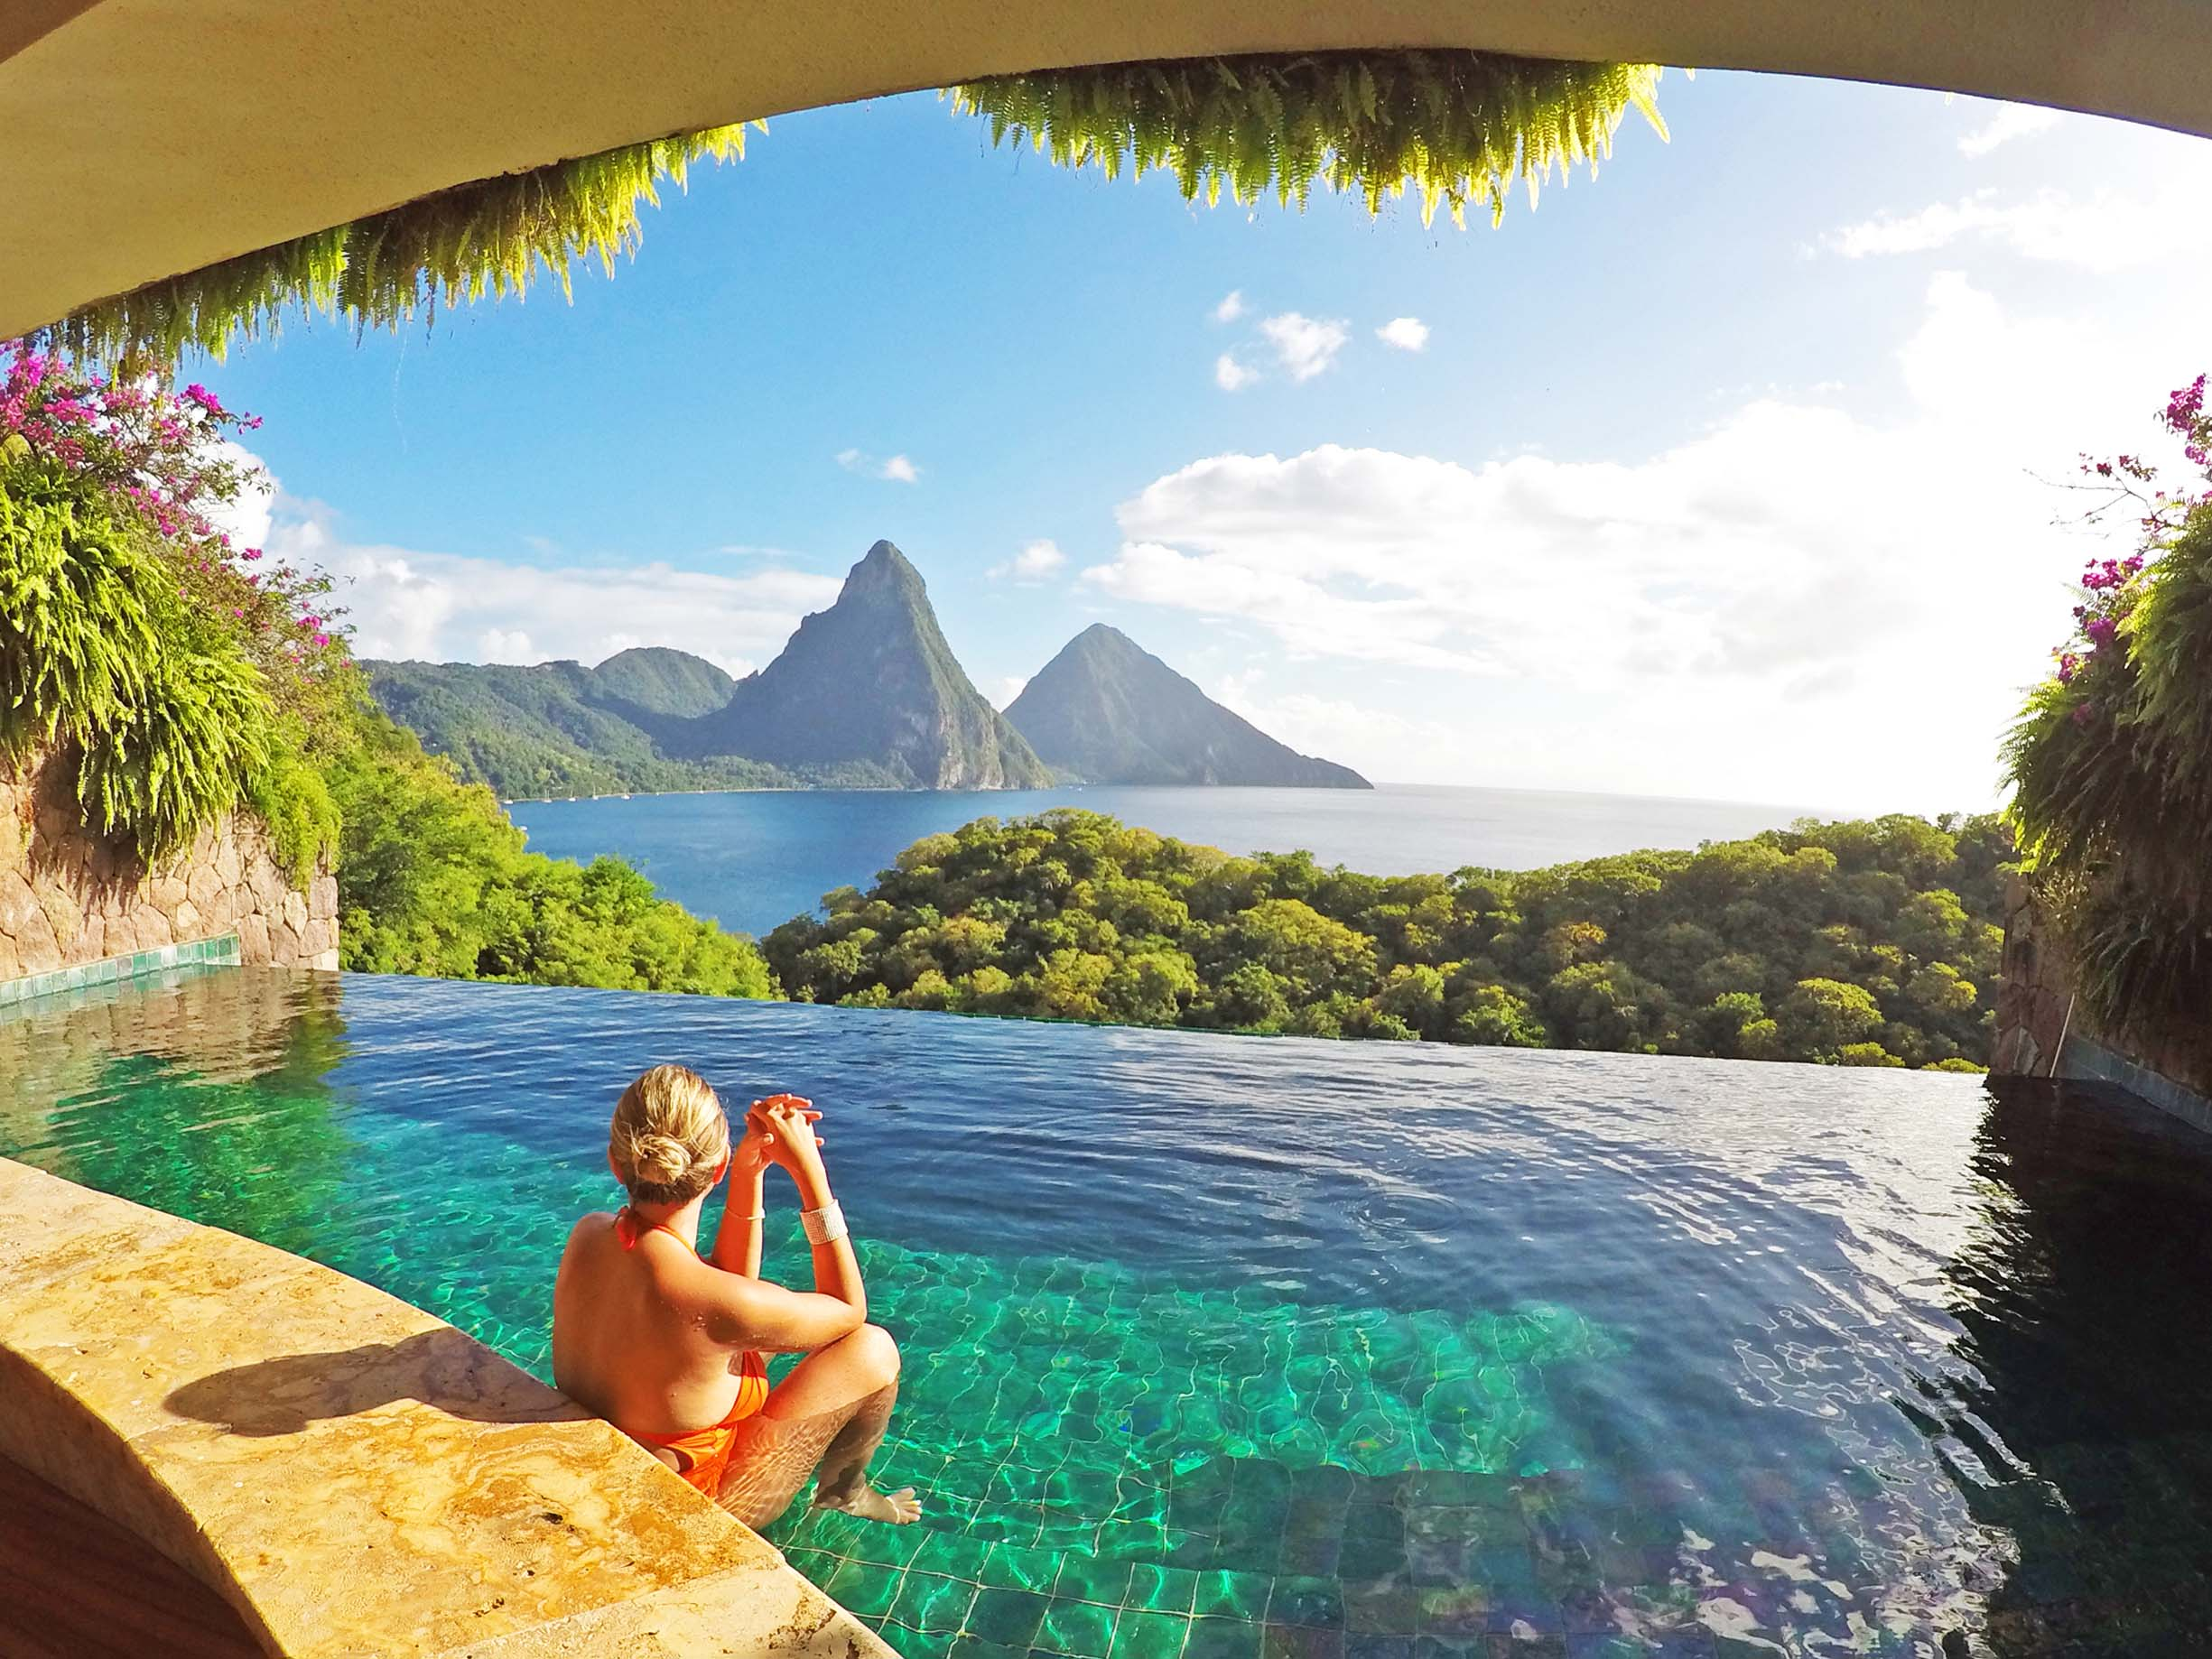 Piscina do quarto Moon Sanctuary no hotel Jade Mountain, e, Saint Lucia